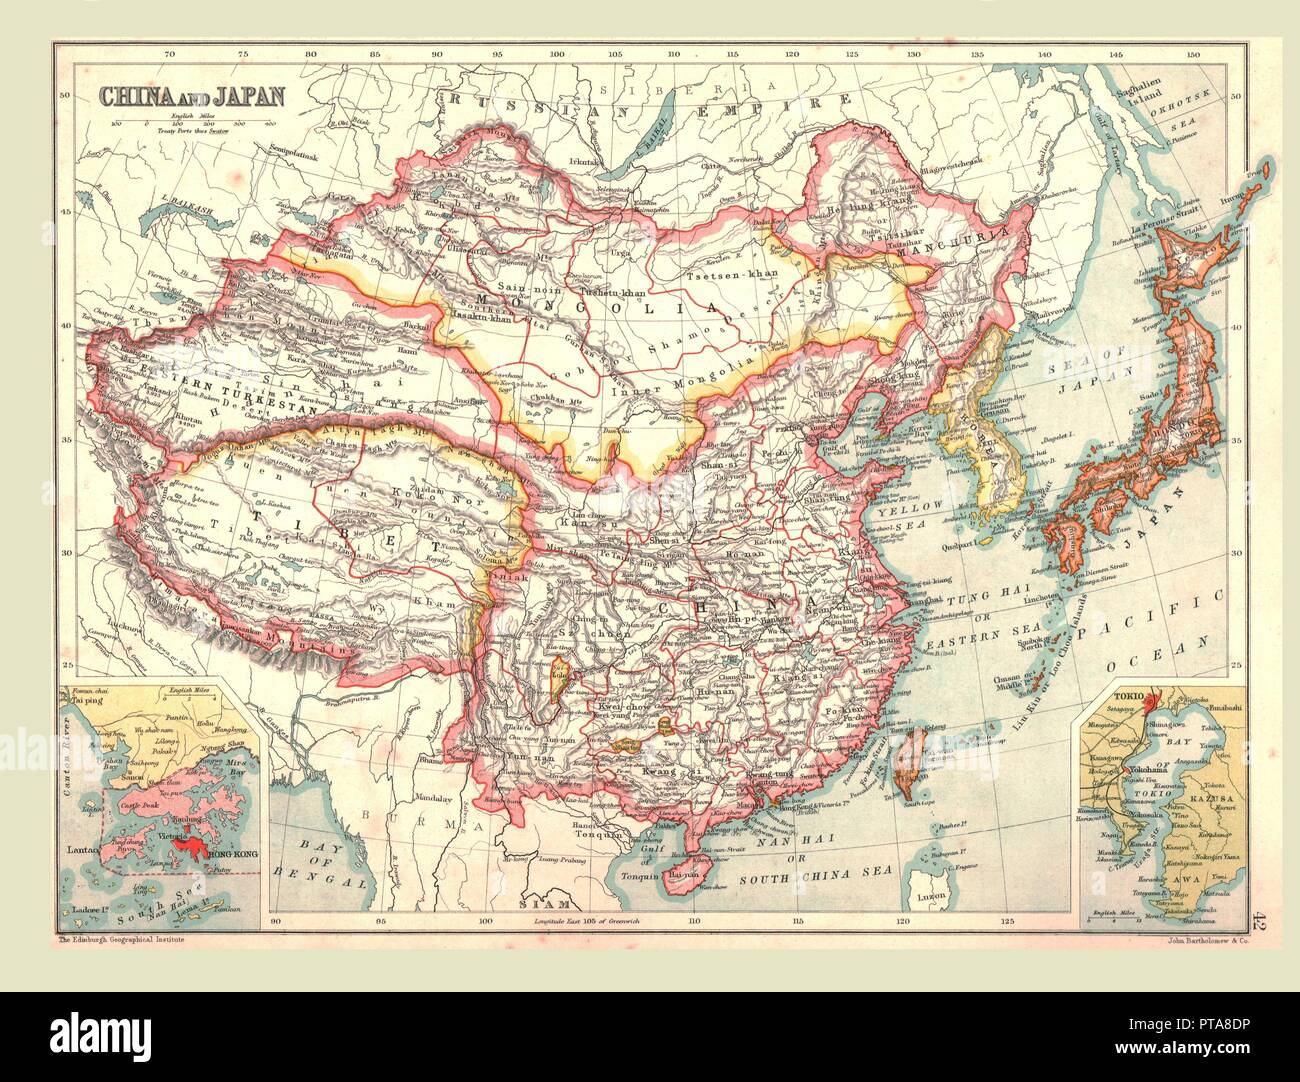 Map of China and Japan, 1902. Showing Mongolia, Eastern Turkestan and Tibet, with insets of Hong Kong and Tokyo Bay. From The Century Atlas of the World. [John Walker & Co, Ltd., London, 1902] - Stock Image